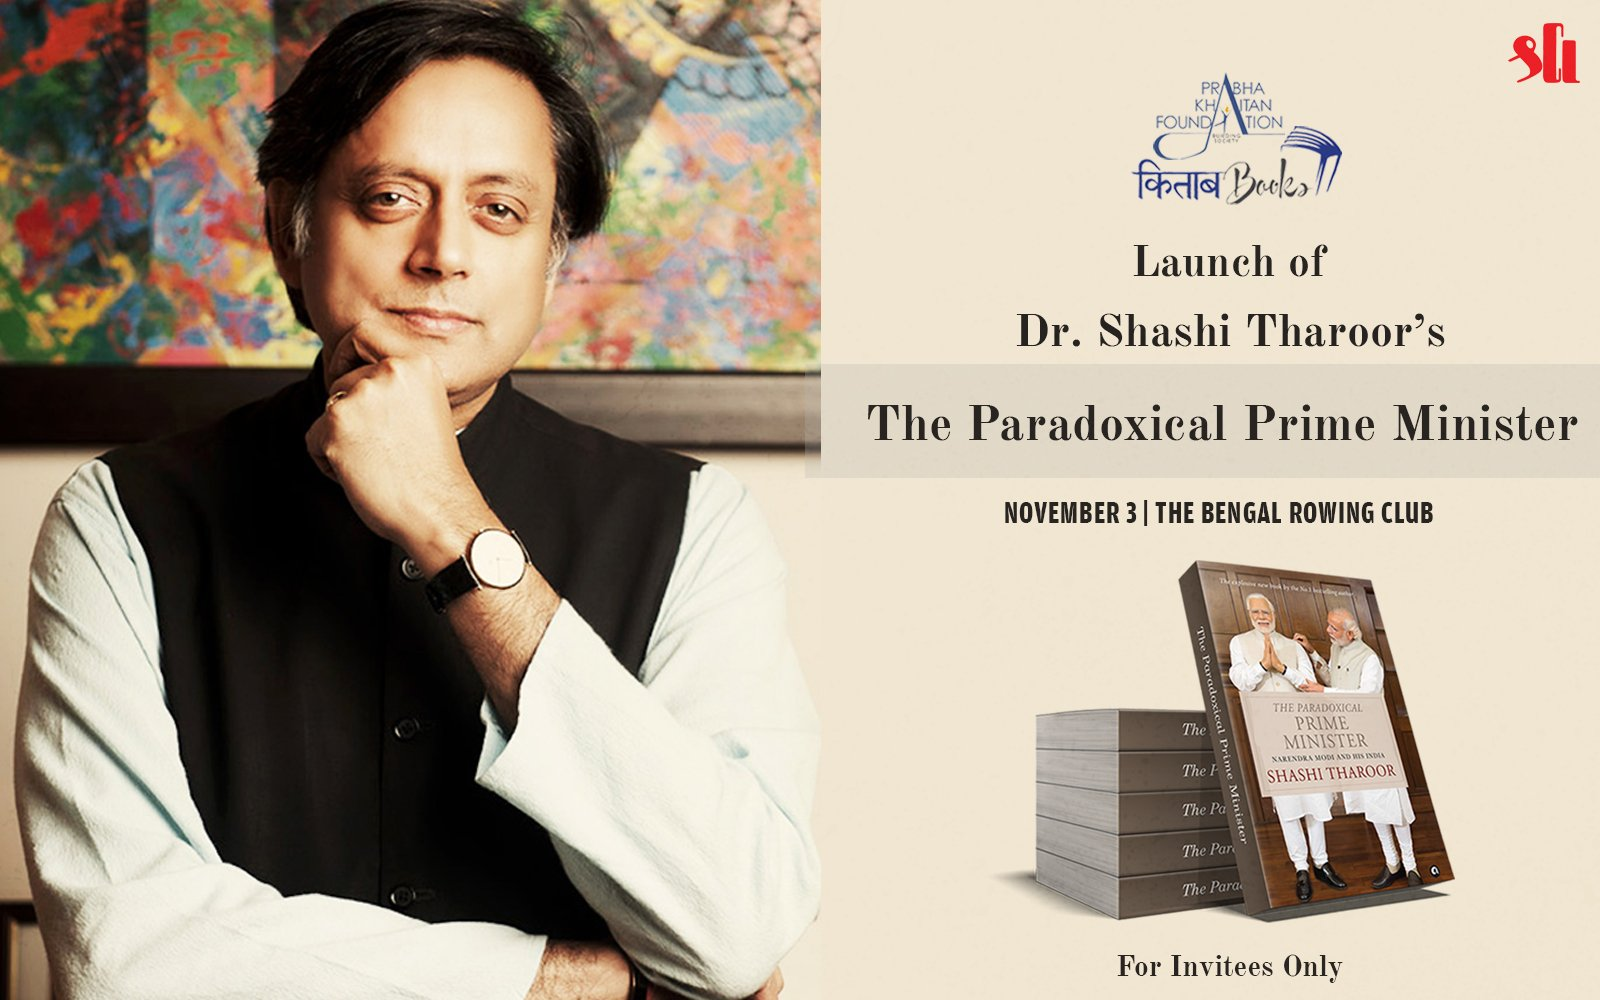 The Paradoxical Prime Minister Tharoor Introduces His New Book On